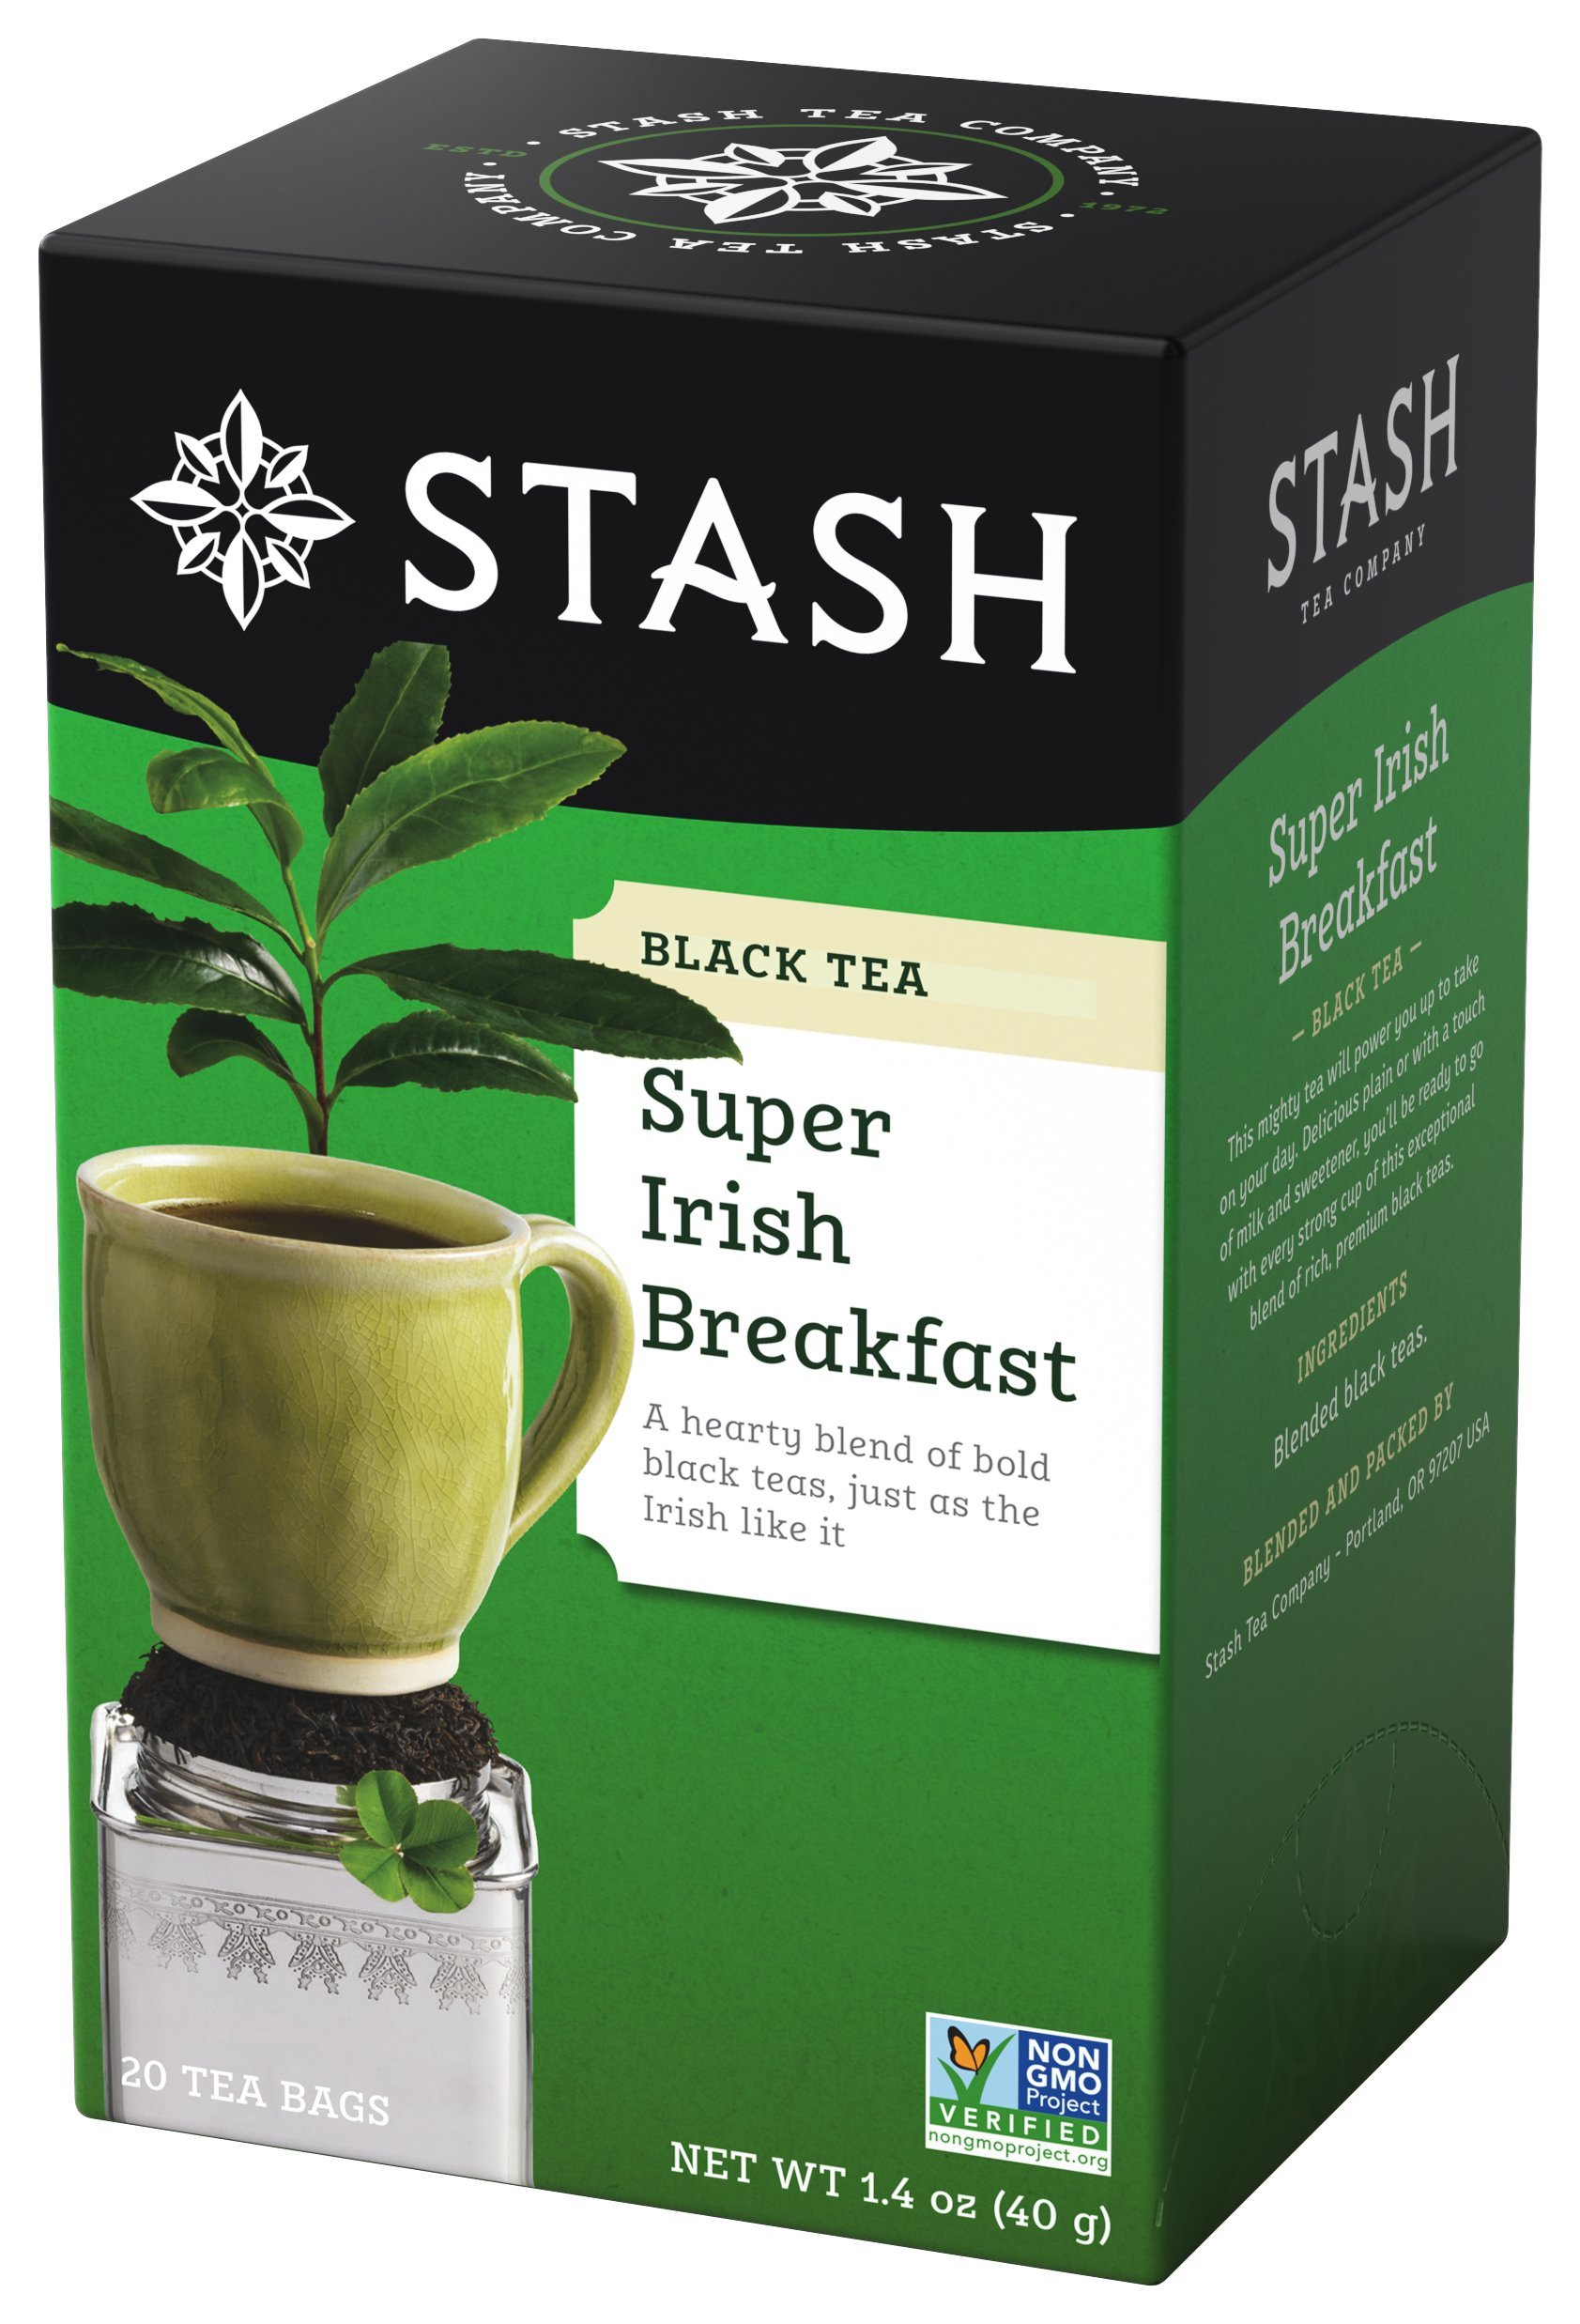 Stash Tea Super Irish Breakfast Black Tea 20 Count Tea Bags in Foil (Pack of 6) Individual Black Tea Bags for Use in Teapots Mugs or Cups, Brew Hot Tea or Iced Tea